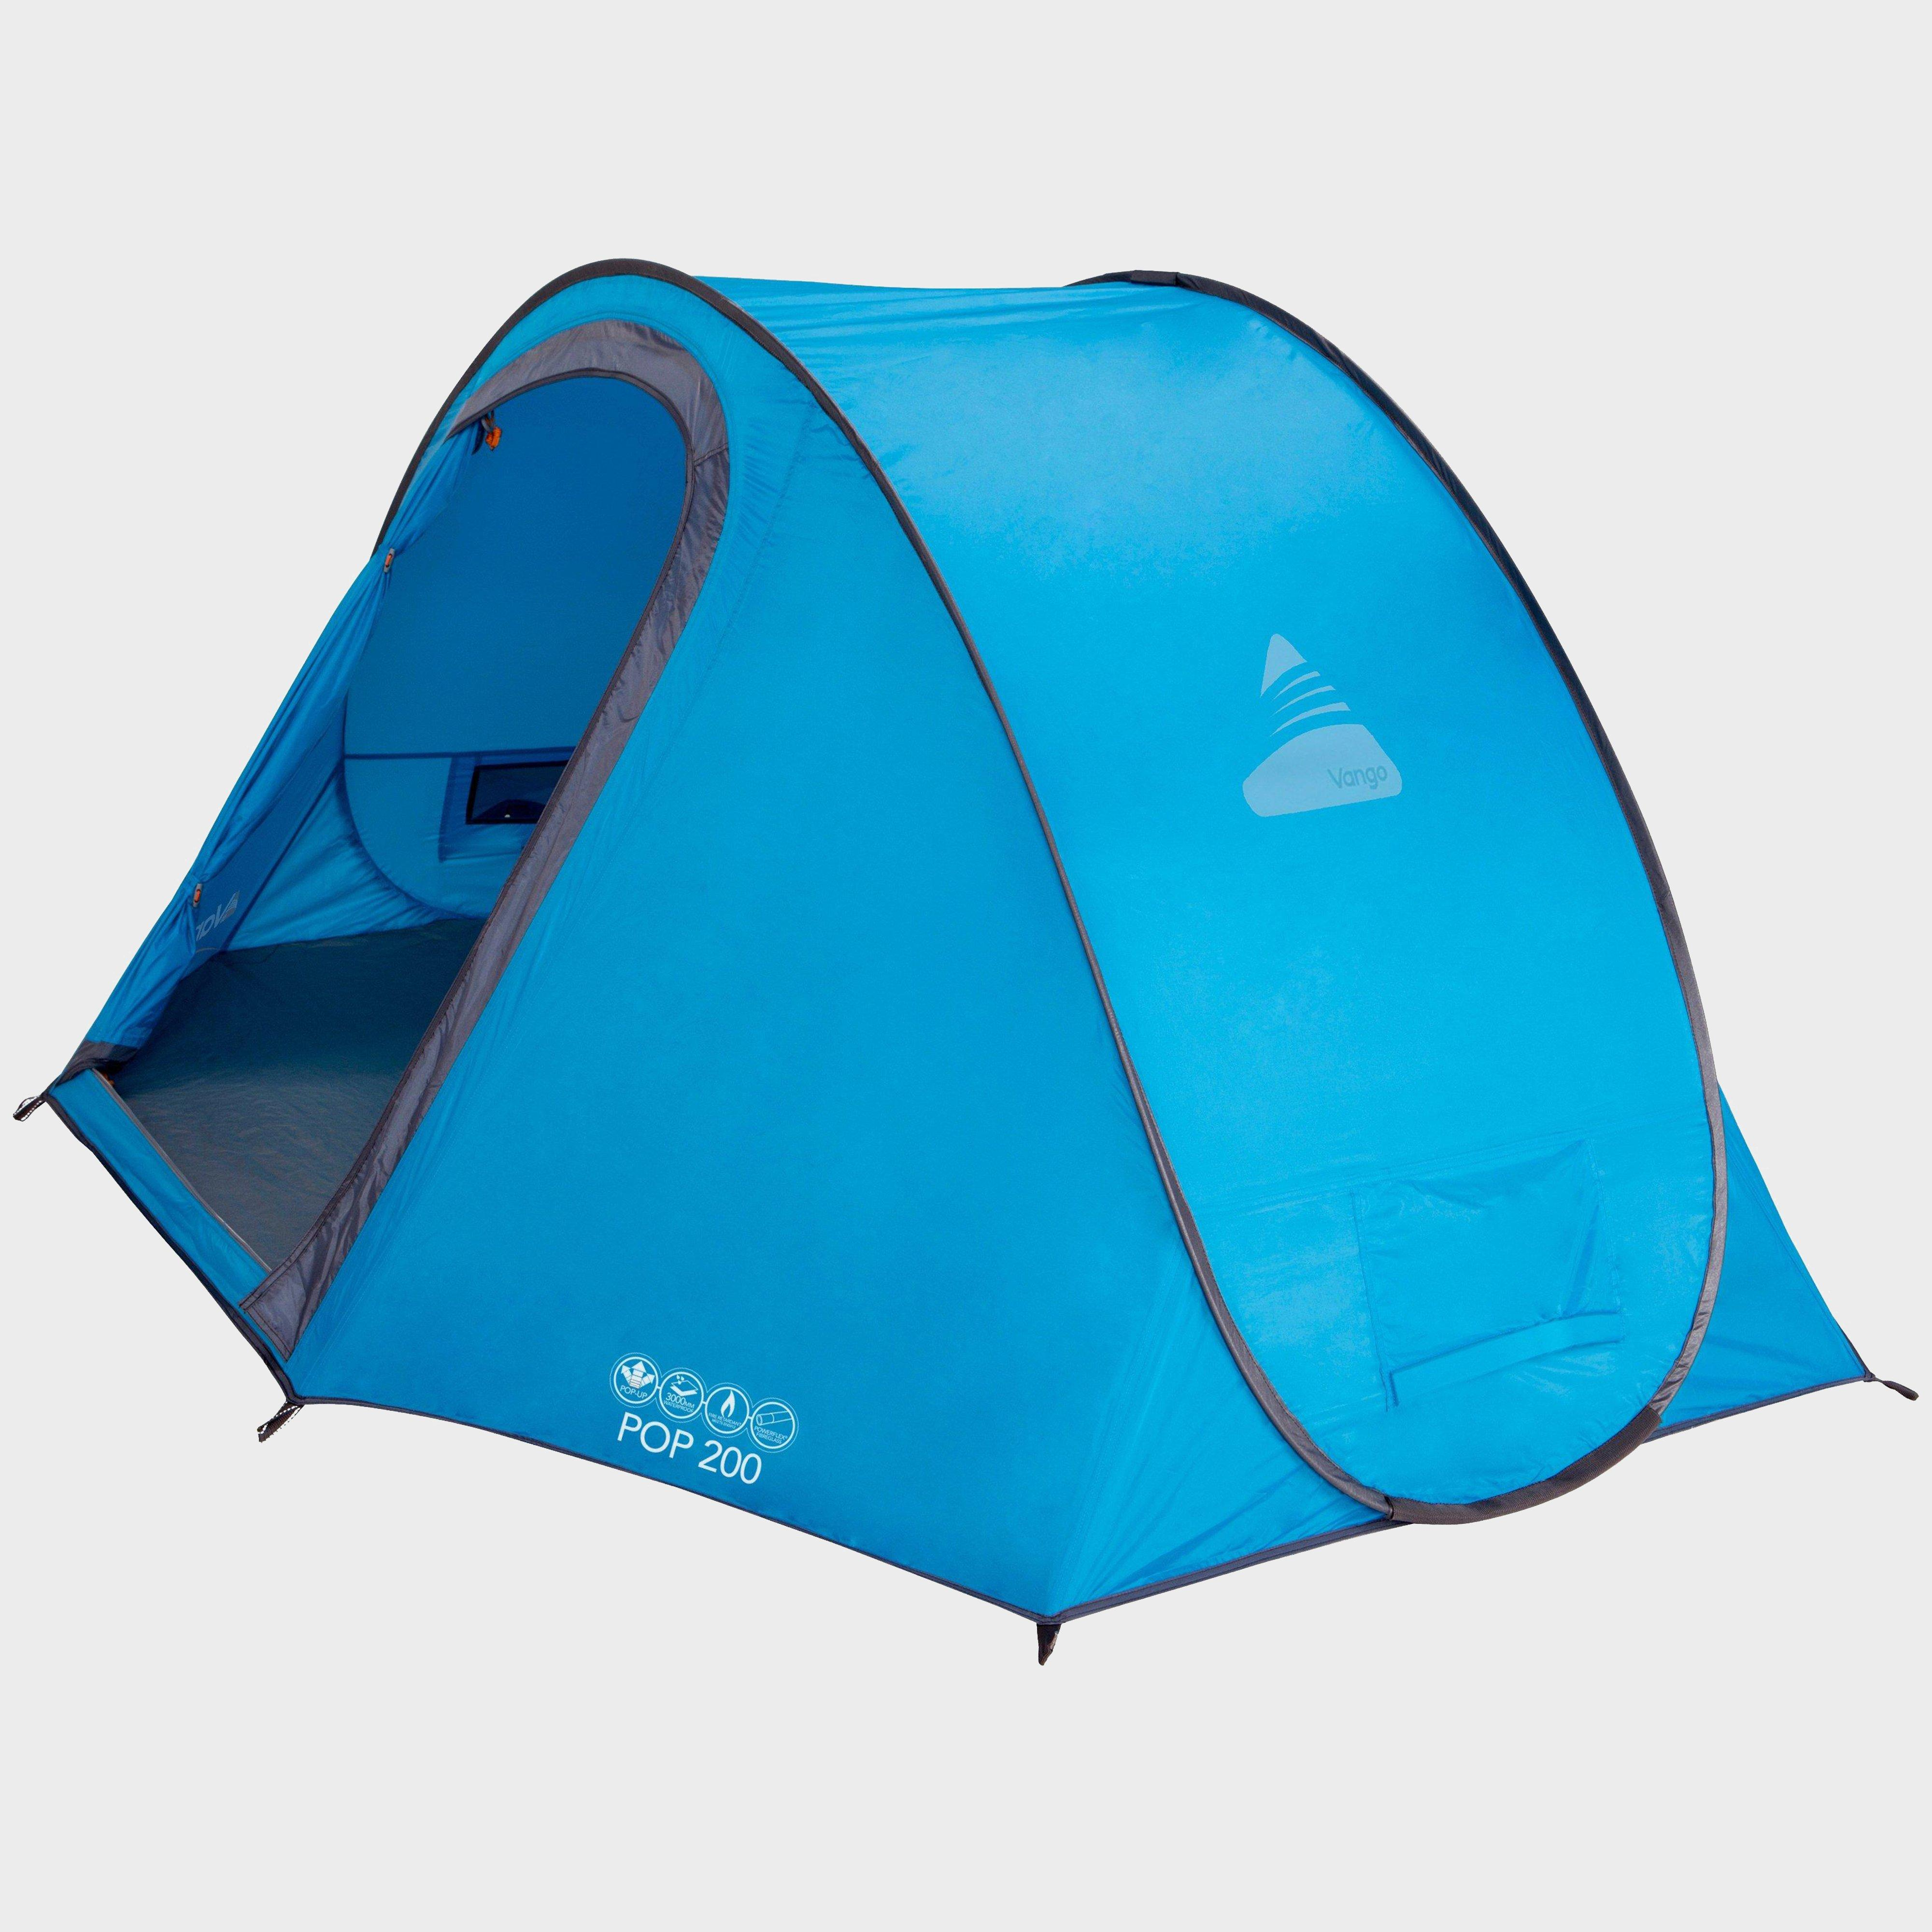 Pop 200 2 Person Tent & Pop Up Tents | Festival u0026 Backpacking Tents | Millets